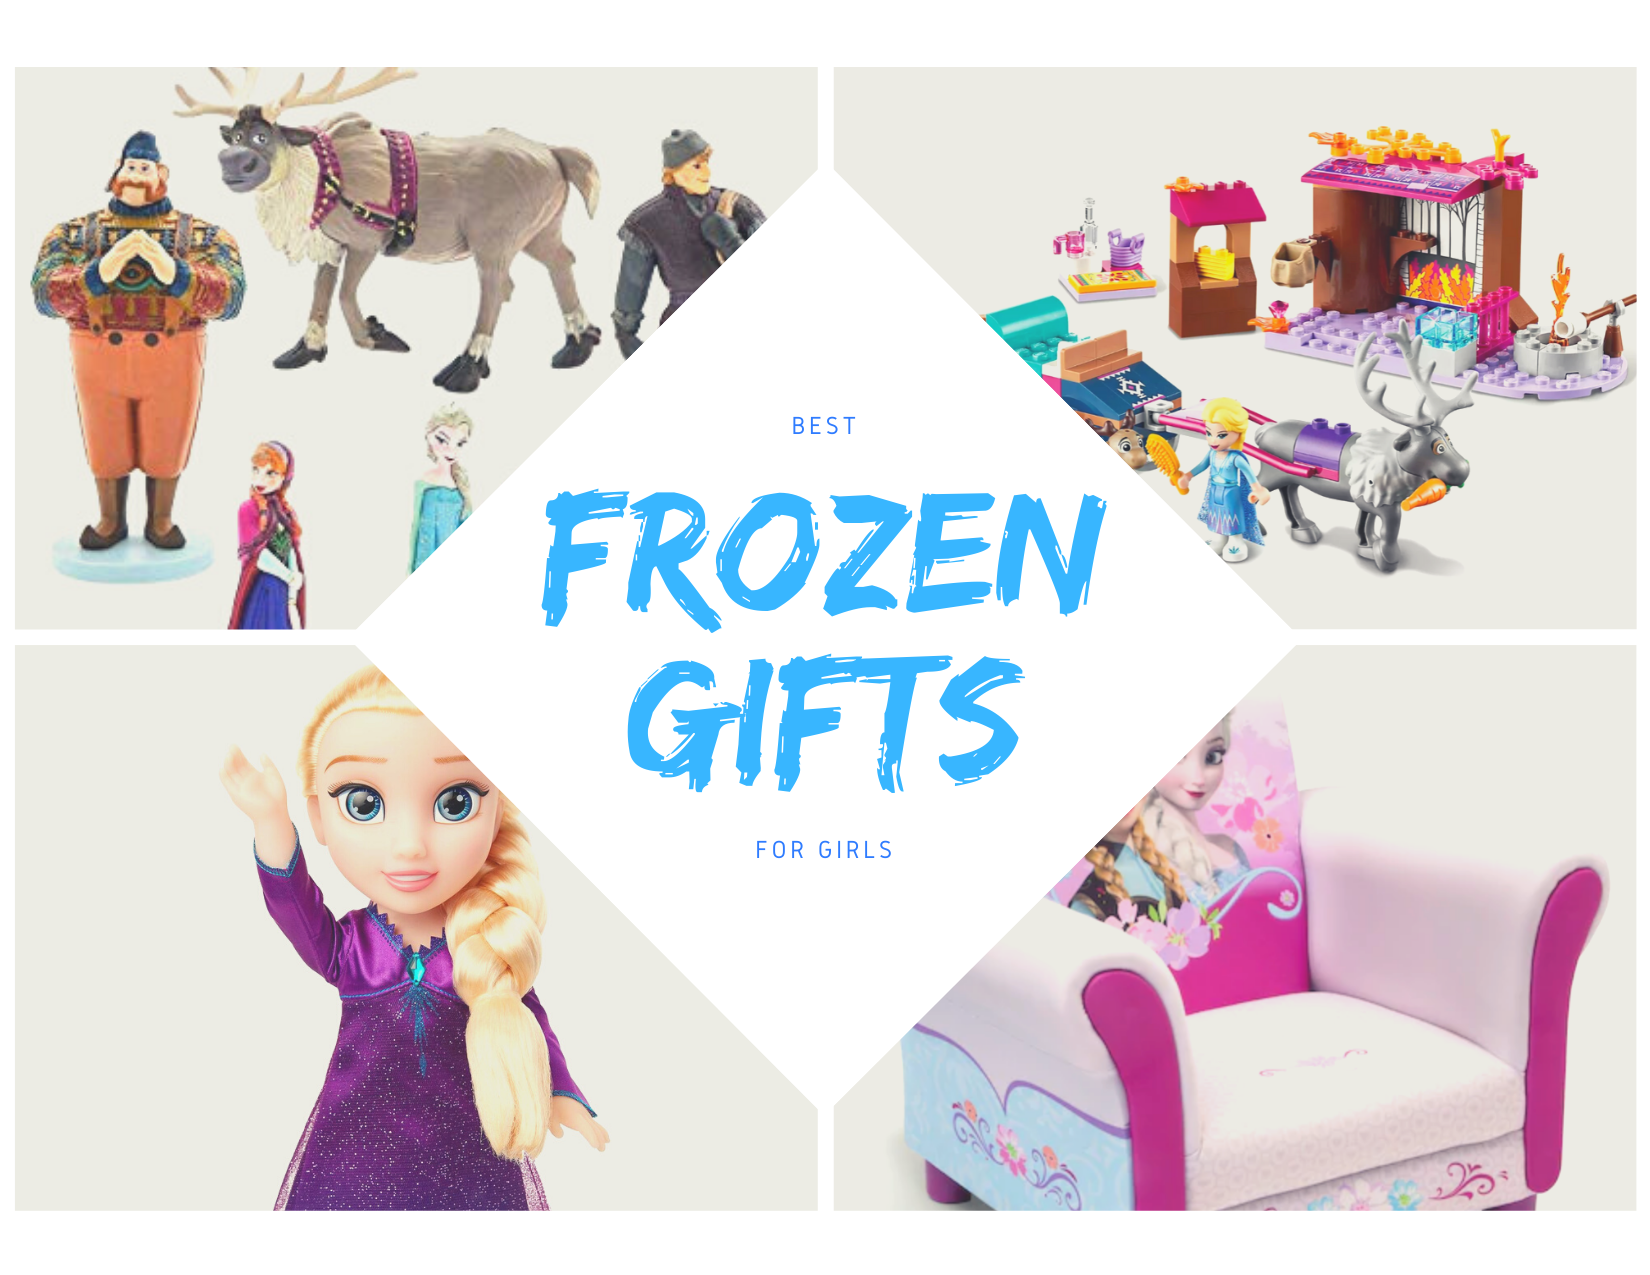 Best Frozen gifts for girls.